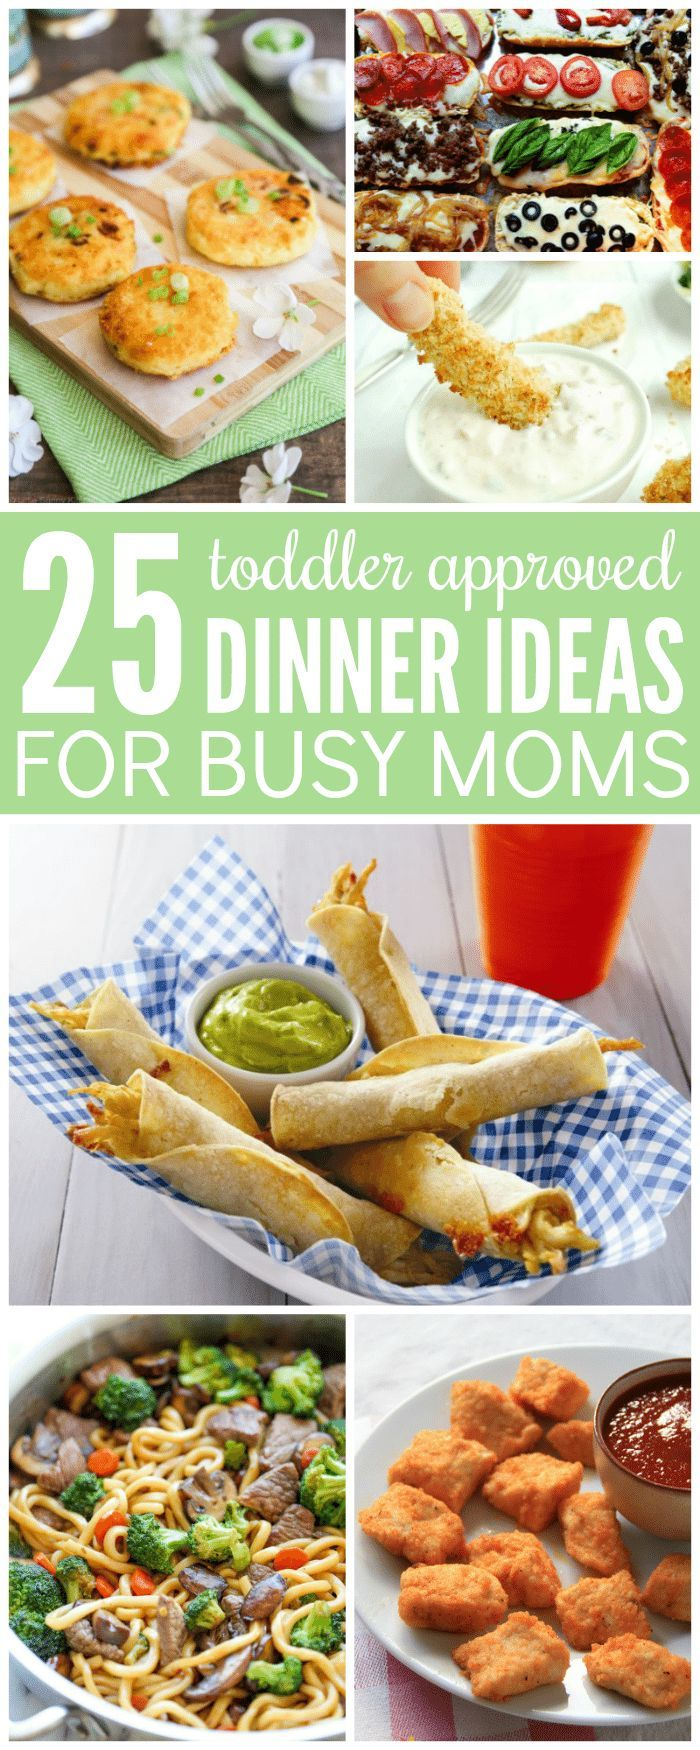 you will love these 25 toddler approved dinner ideas for busy moms